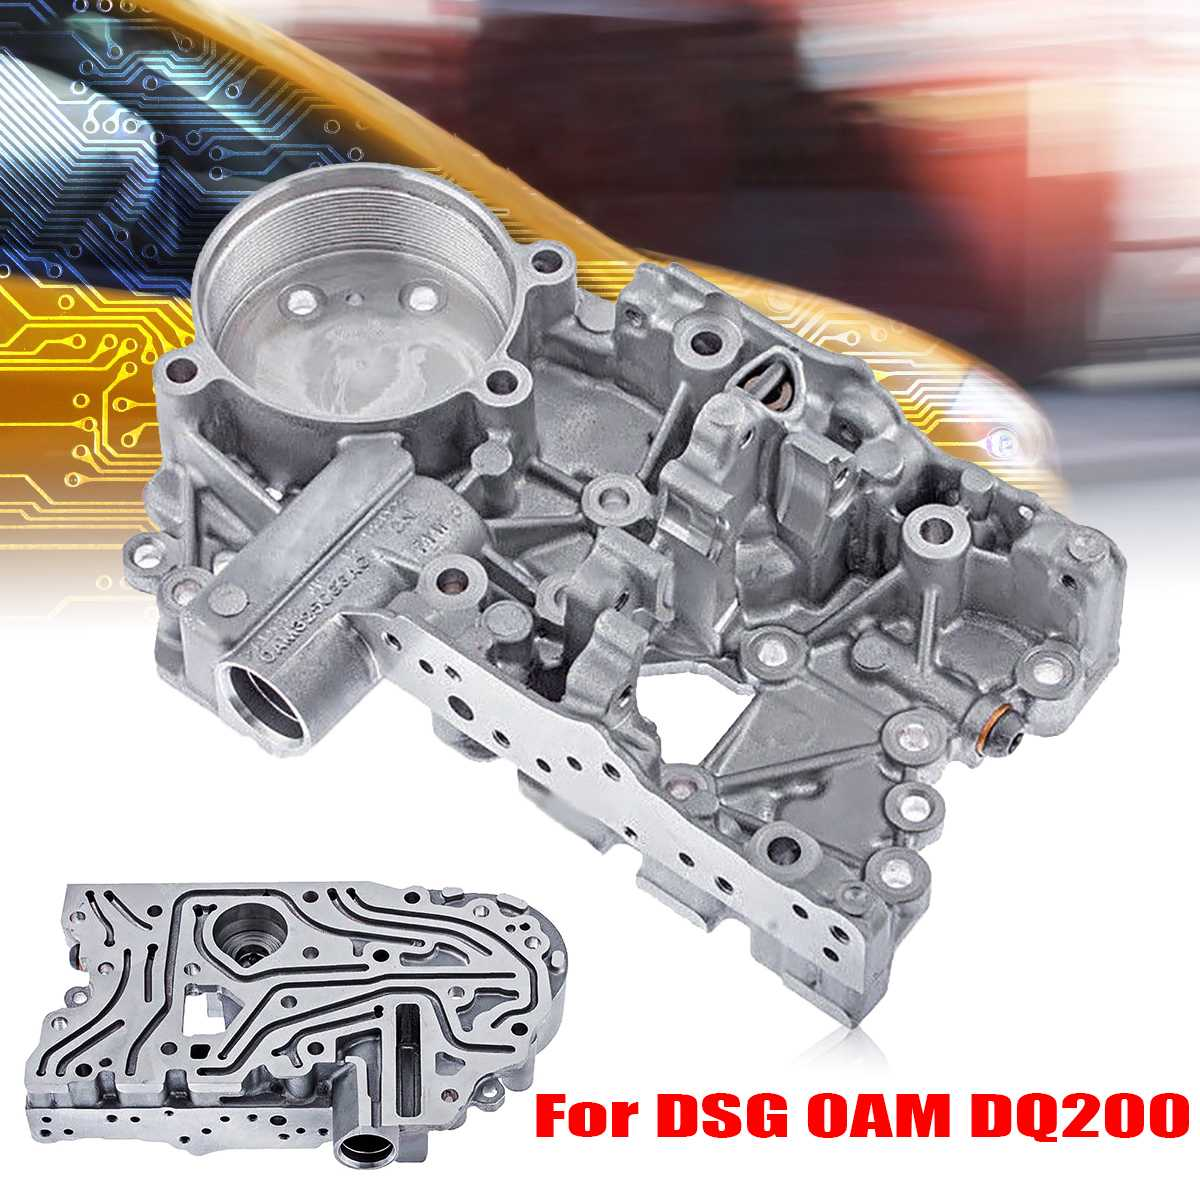 DQ200 DSG Valvebody Accumulator Housing Metal For Audi/VW 0AM325066AC 0AM325066C 0AM325066R Auto Replacement PartsDQ200 DSG Valvebody Accumulator Housing Metal For Audi/VW 0AM325066AC 0AM325066C 0AM325066R Auto Replacement Parts